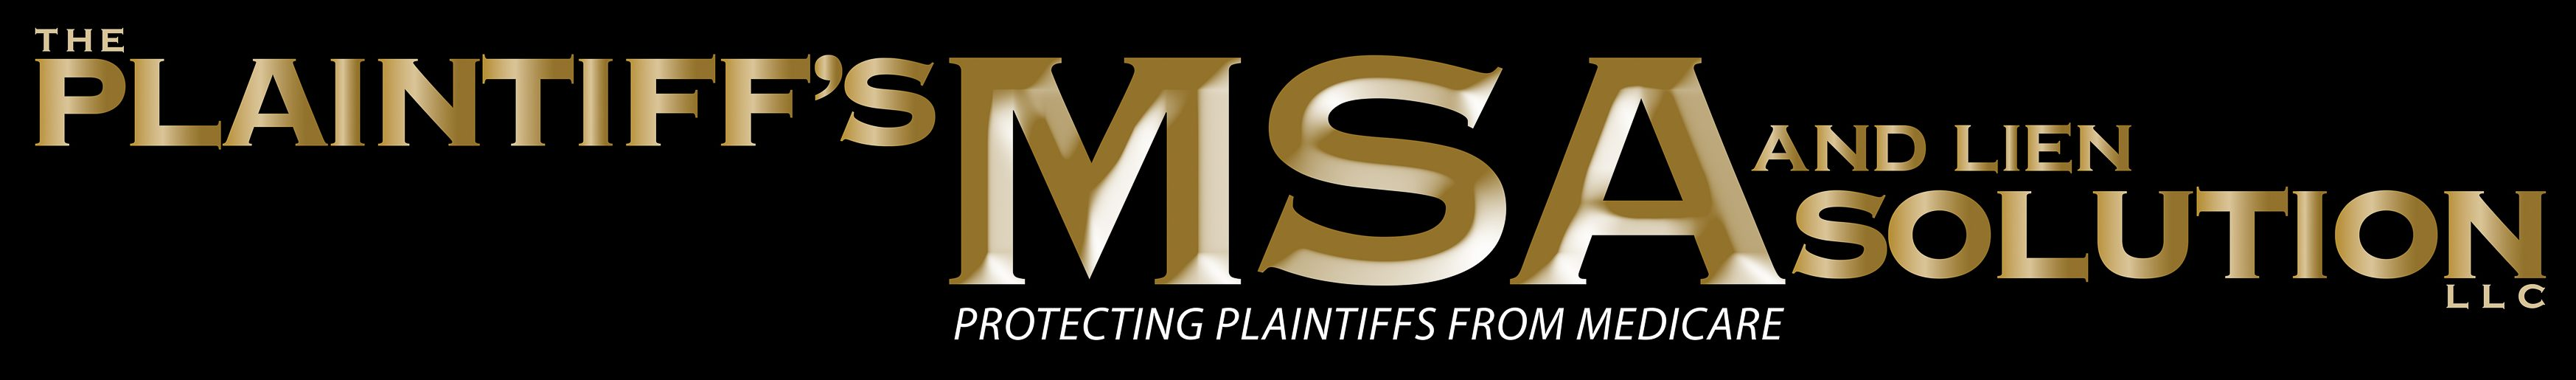 The PLAINTIFF'S MSA AND LIEN SOLUTION